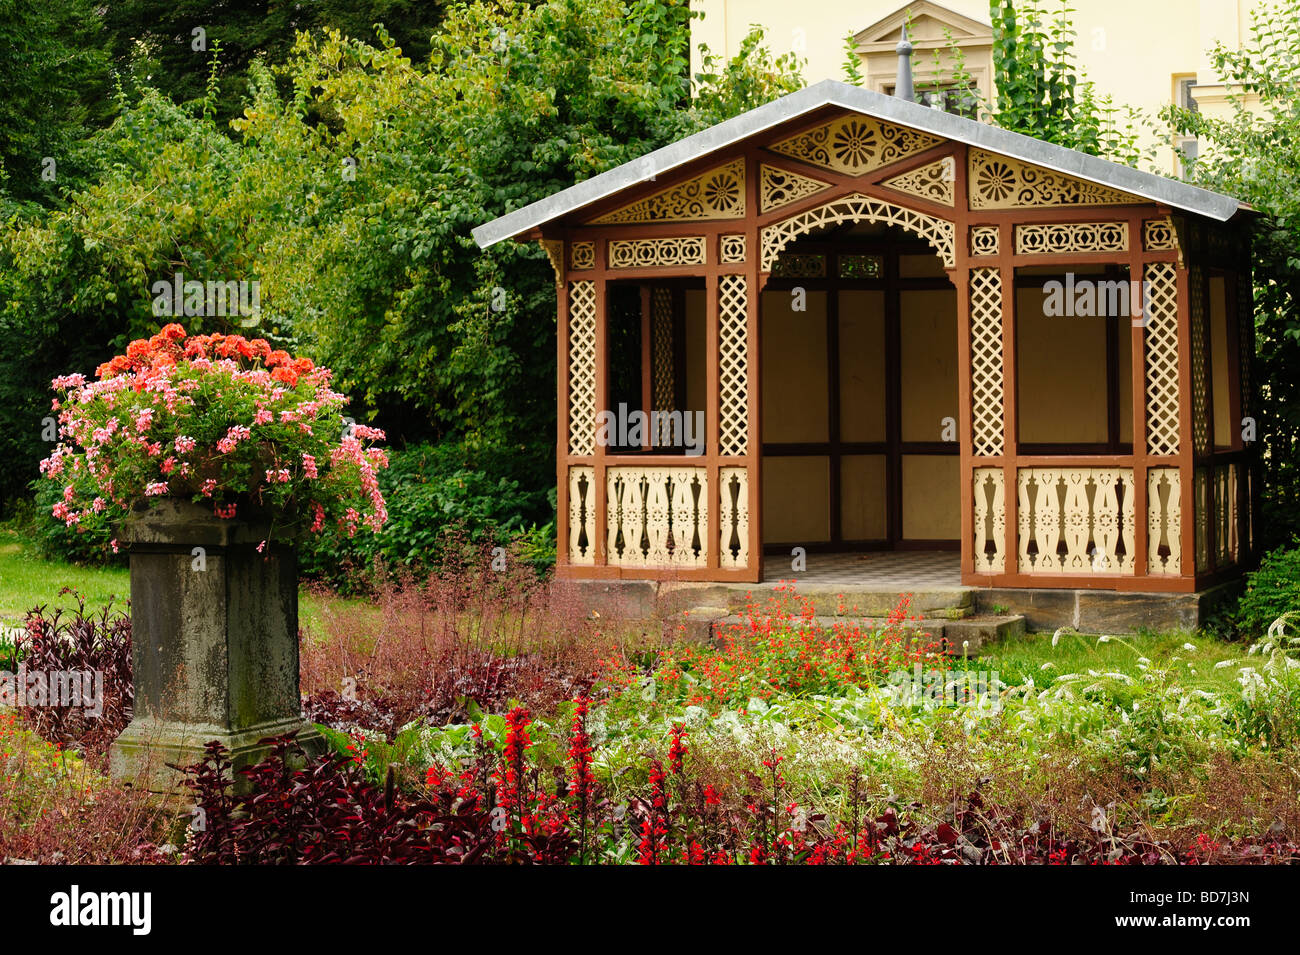 Hut and Garden near the Villa Wahnfried, the Richard Wagner museum in Bayreuth, Bavaria, Germany - Stock Image